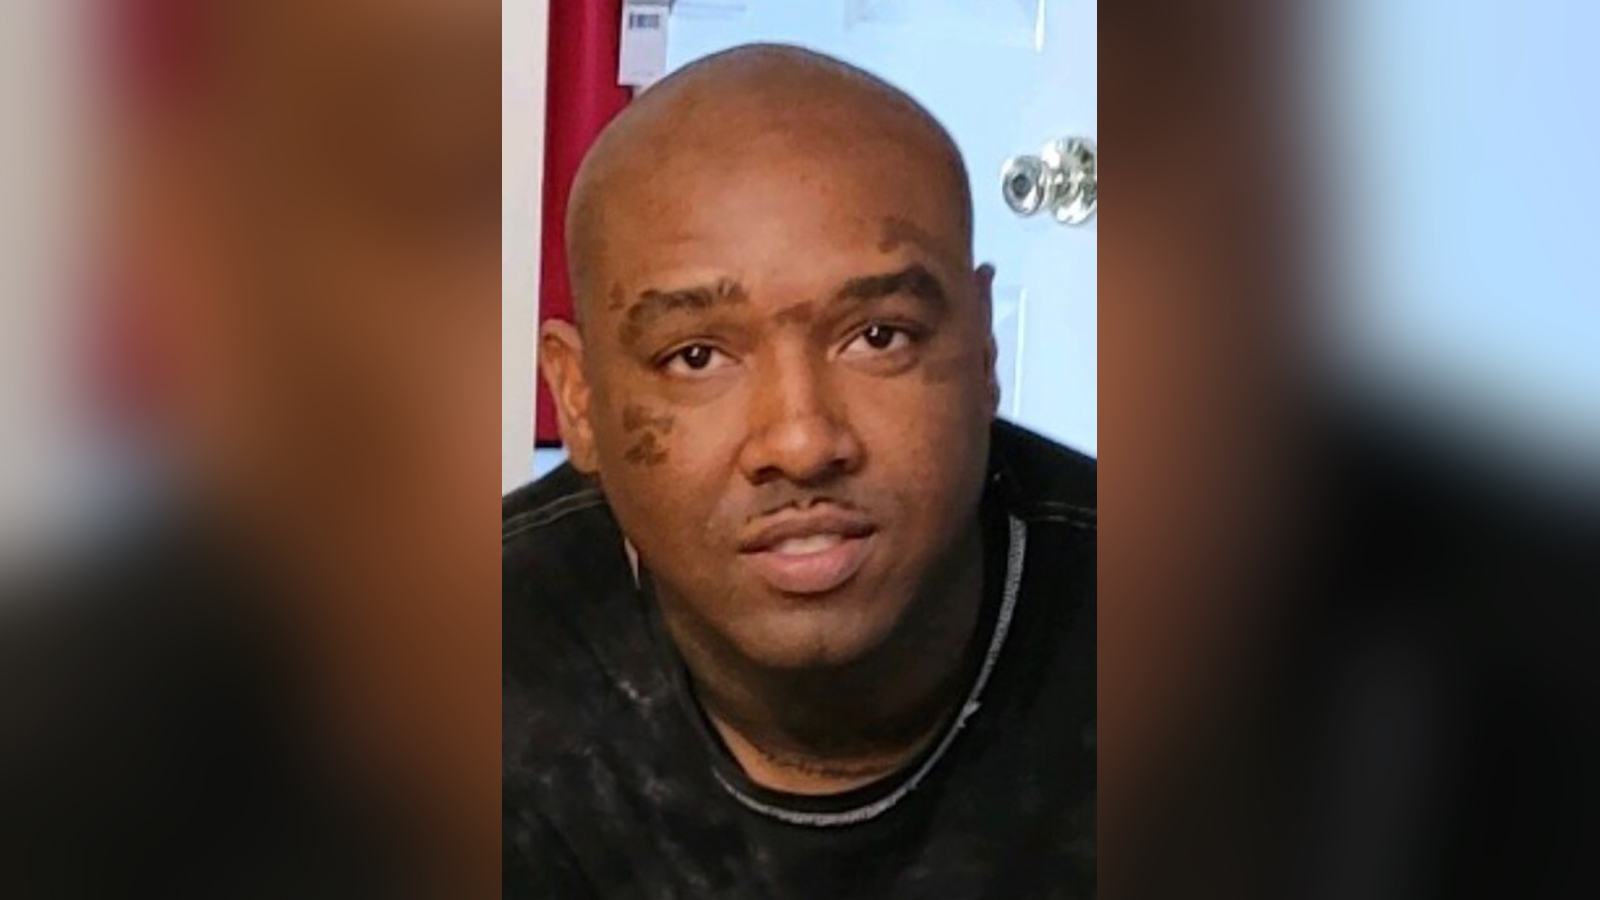 Charleston County coroner amends Jamal Sutherland's manner of death from 'undetermined' to 'homicide'